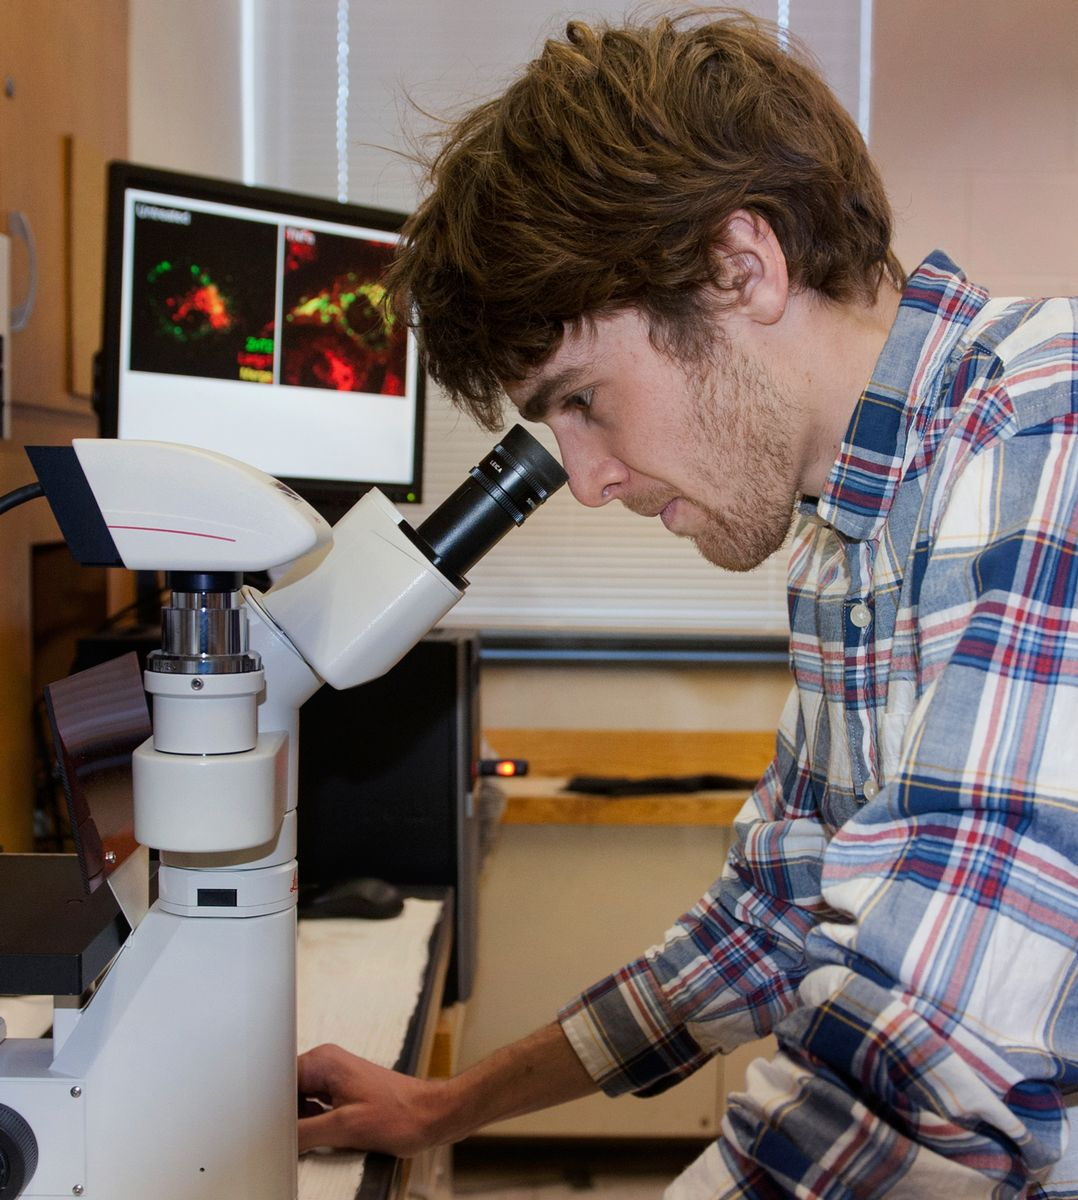 Penn State student in laboratory at microscope